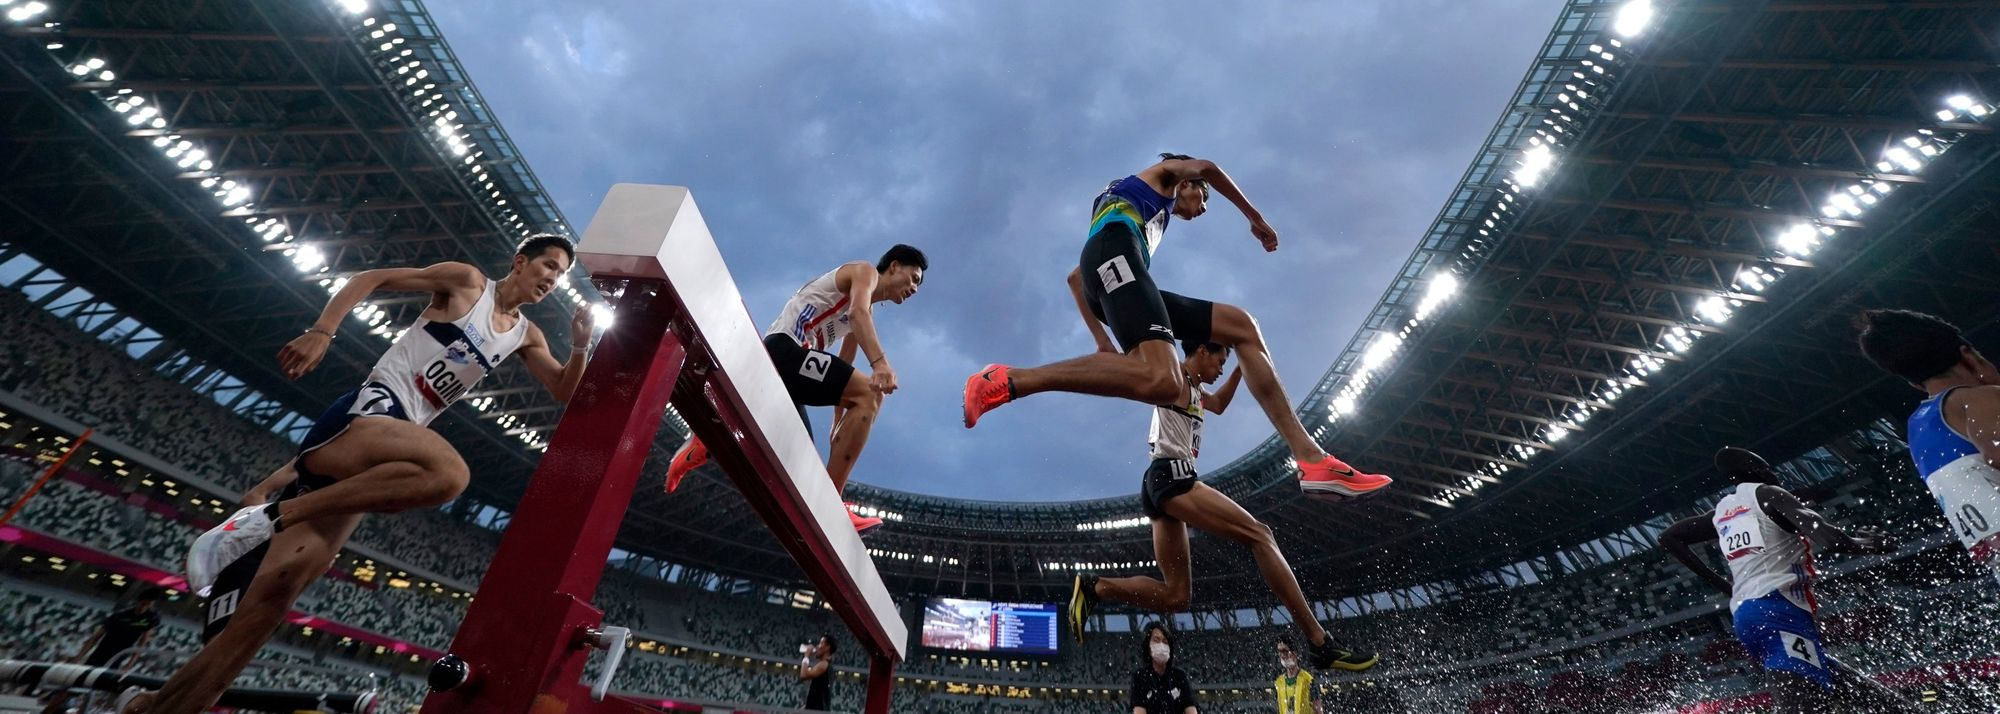 Competing in the stadium which will host Olympic athletics action this summer, Kazuki Kurokawa and Ryuji Miura were among the athletes to rise to the occasion at the Ready Steady Tokyo meeting.